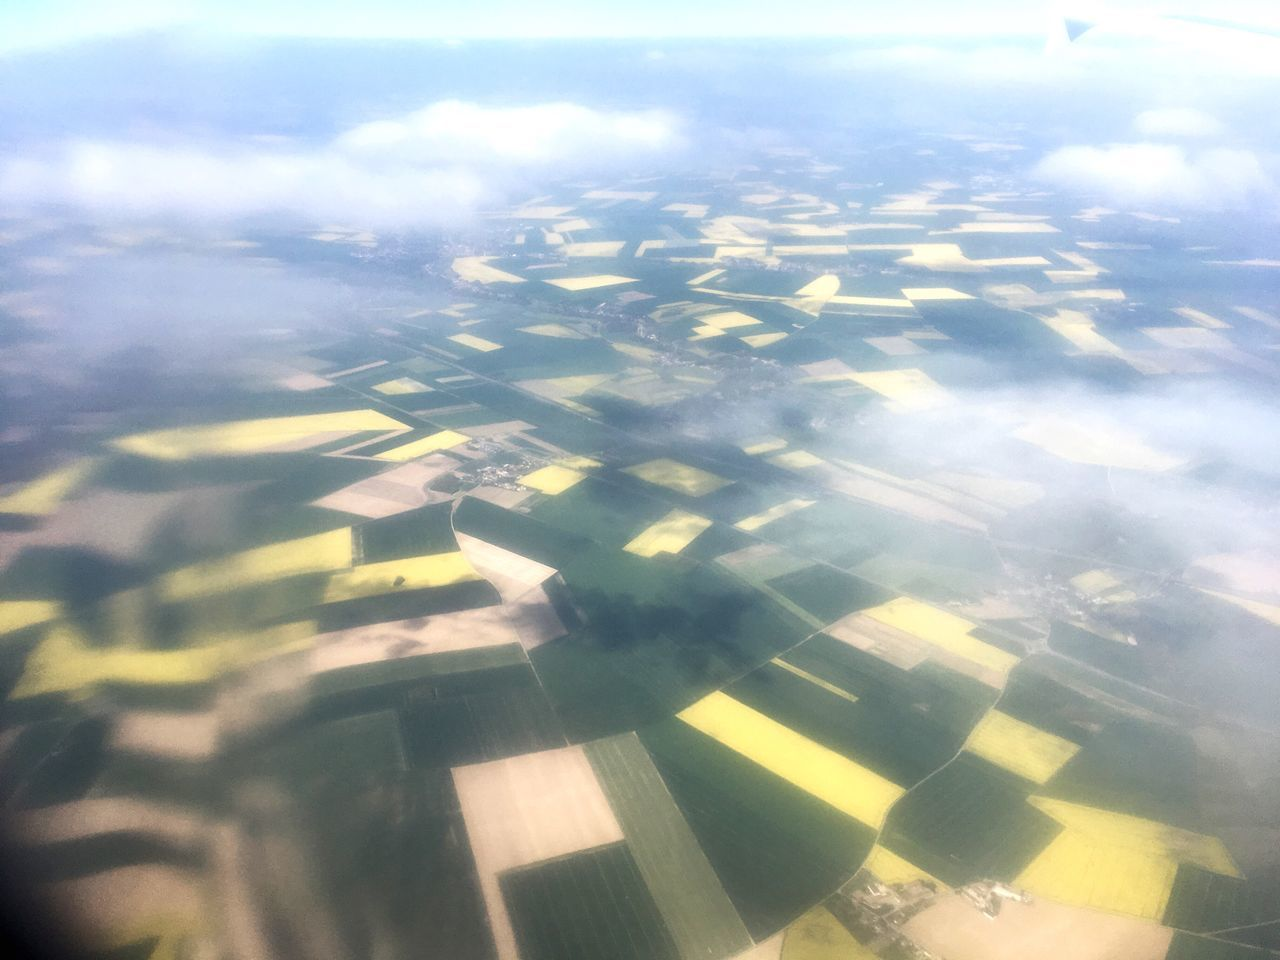 Aerial View Beauty In Nature Nature Scenics Tranquility Agriculture Outdoors Landscape Tranquil Scene Patchwork Landscape No People Day Field Rural Scene Yellow Sky Airplane Wing Mostard Fields